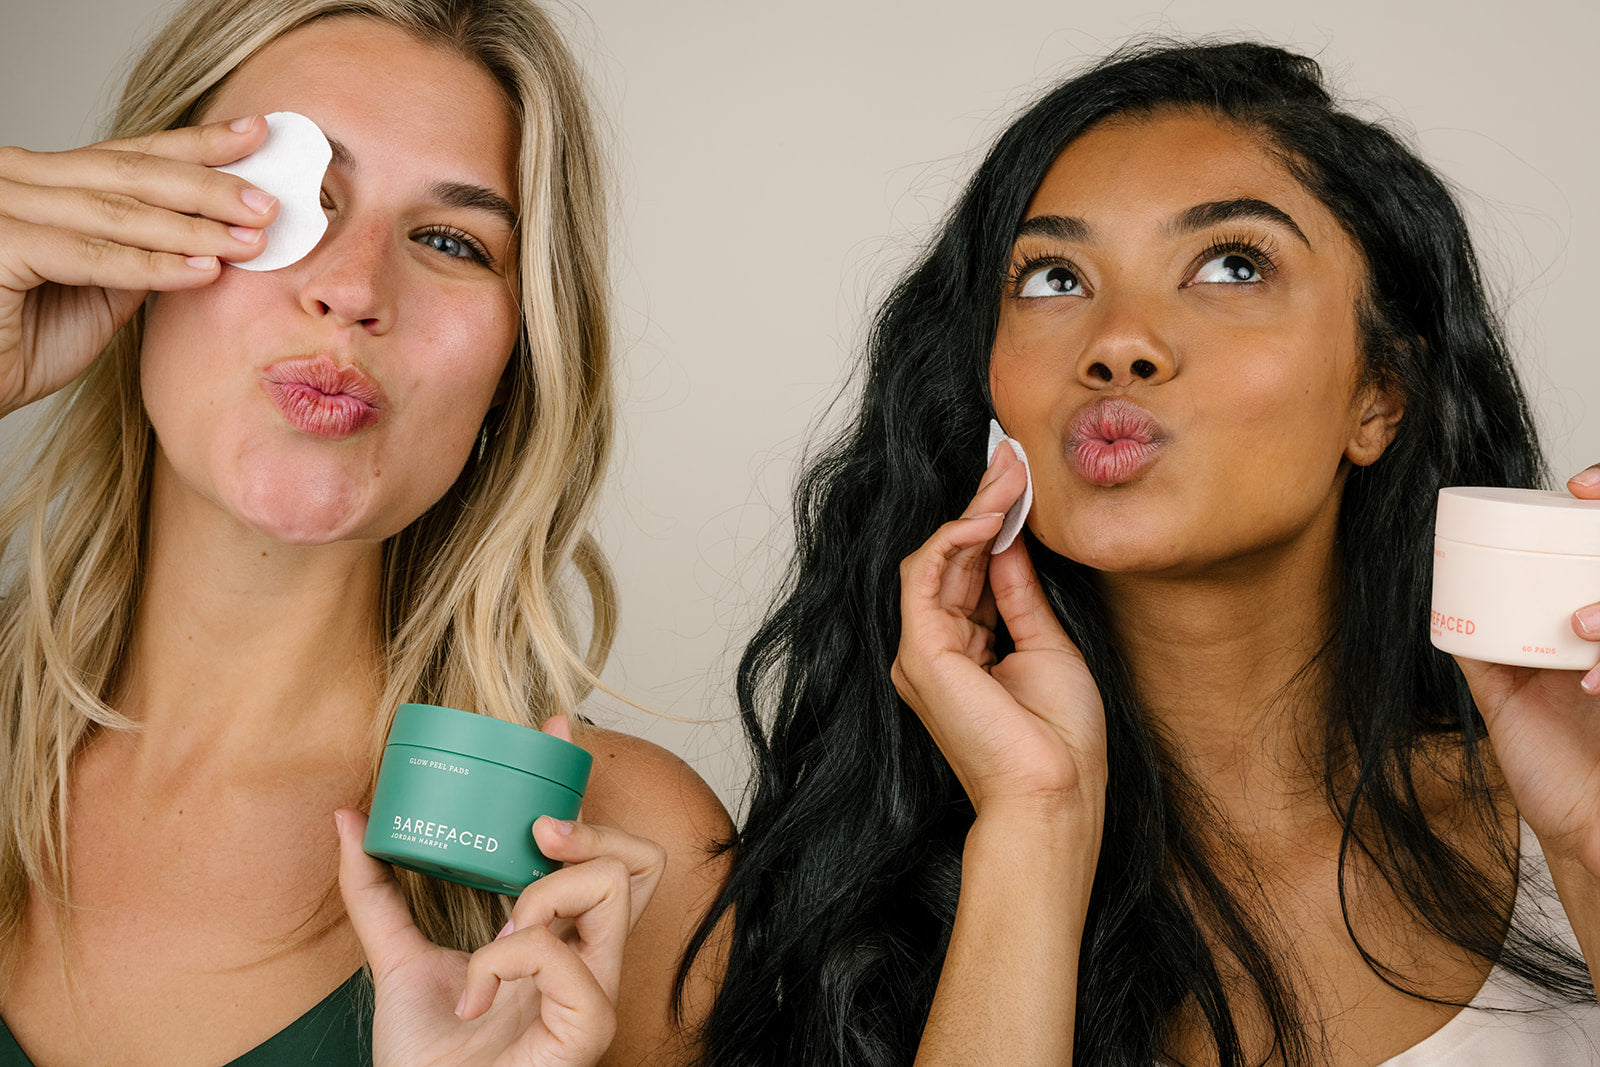 Barefaced models with Glow Peel Pads and Tonings Pads II